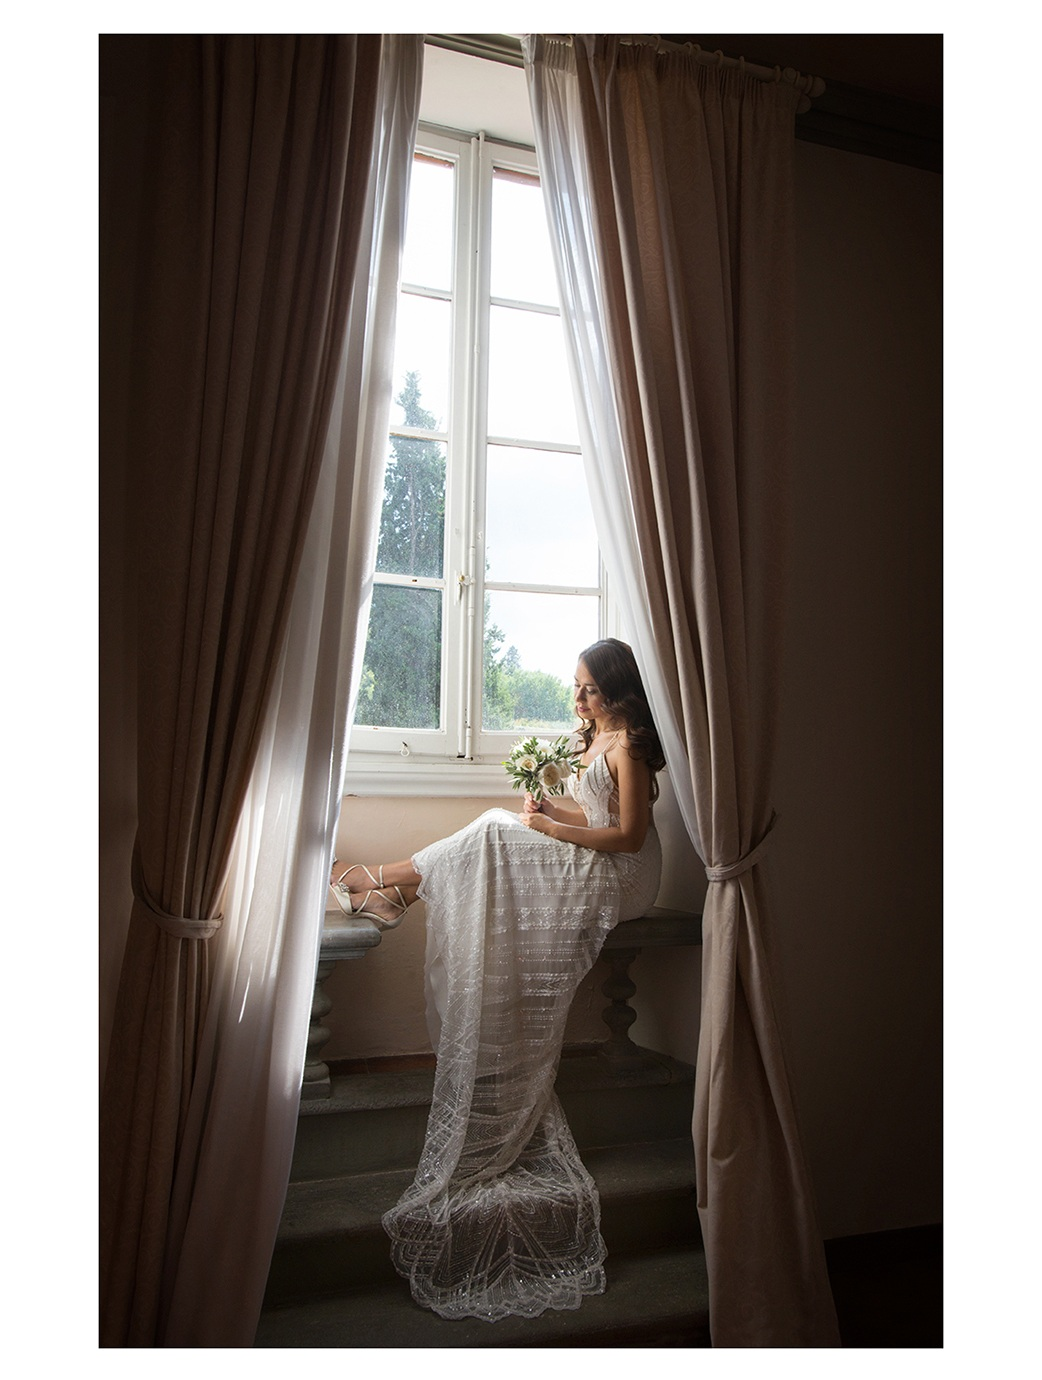 Erin-Shimazu-Photography-Wedding-Italy-Bride-Window.jpg